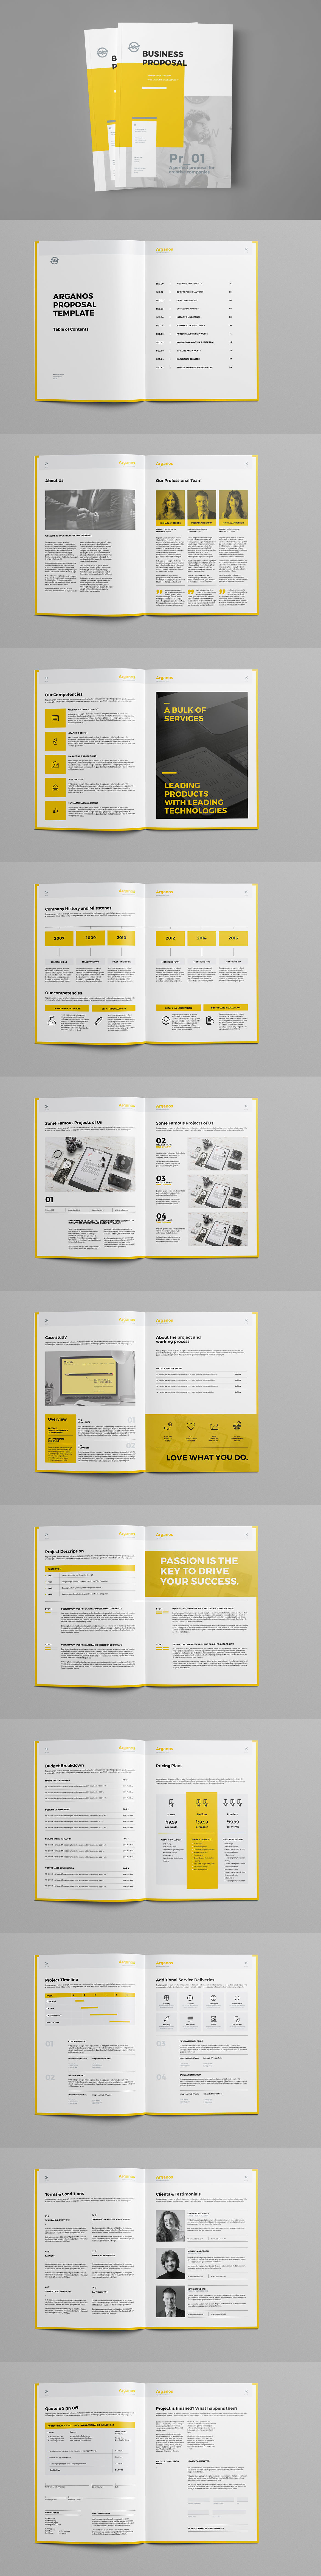 Minimal and Professional Proposal Template InDesign INDD - 24 Pages ...